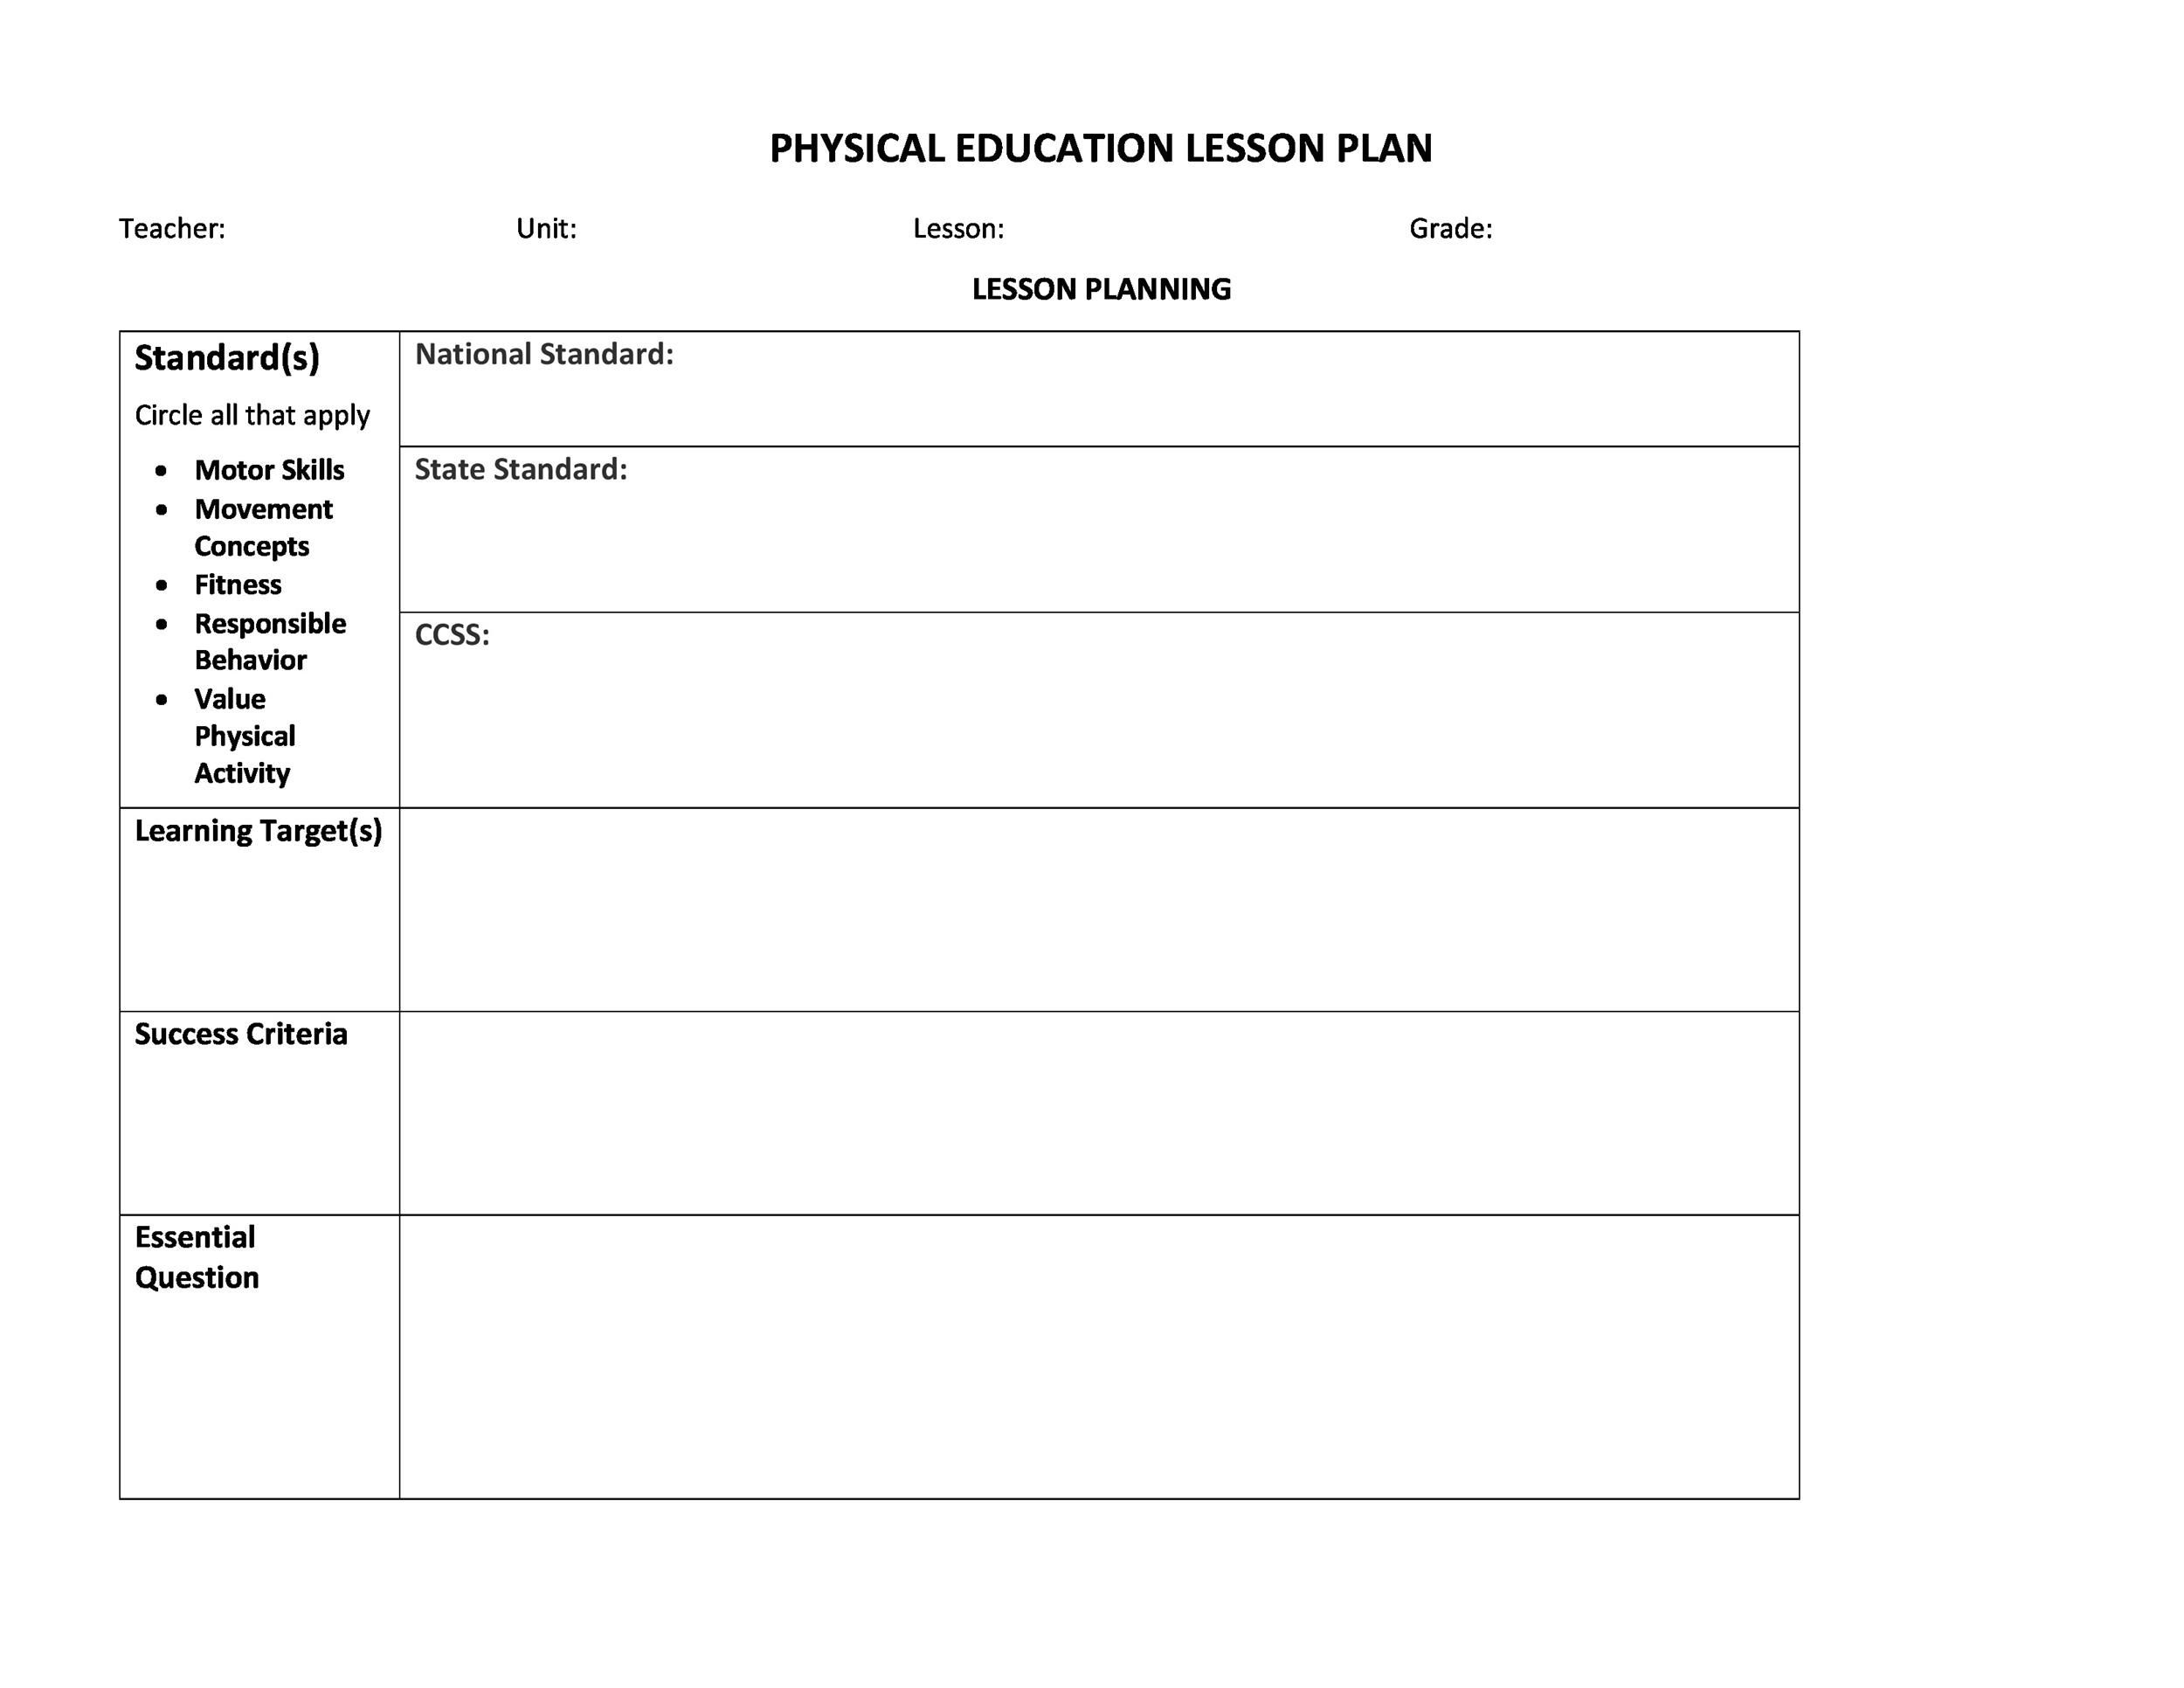 005 Awful Downloadable Lesson Plan Template Image  Printable Weekly Pdf Free WordFull